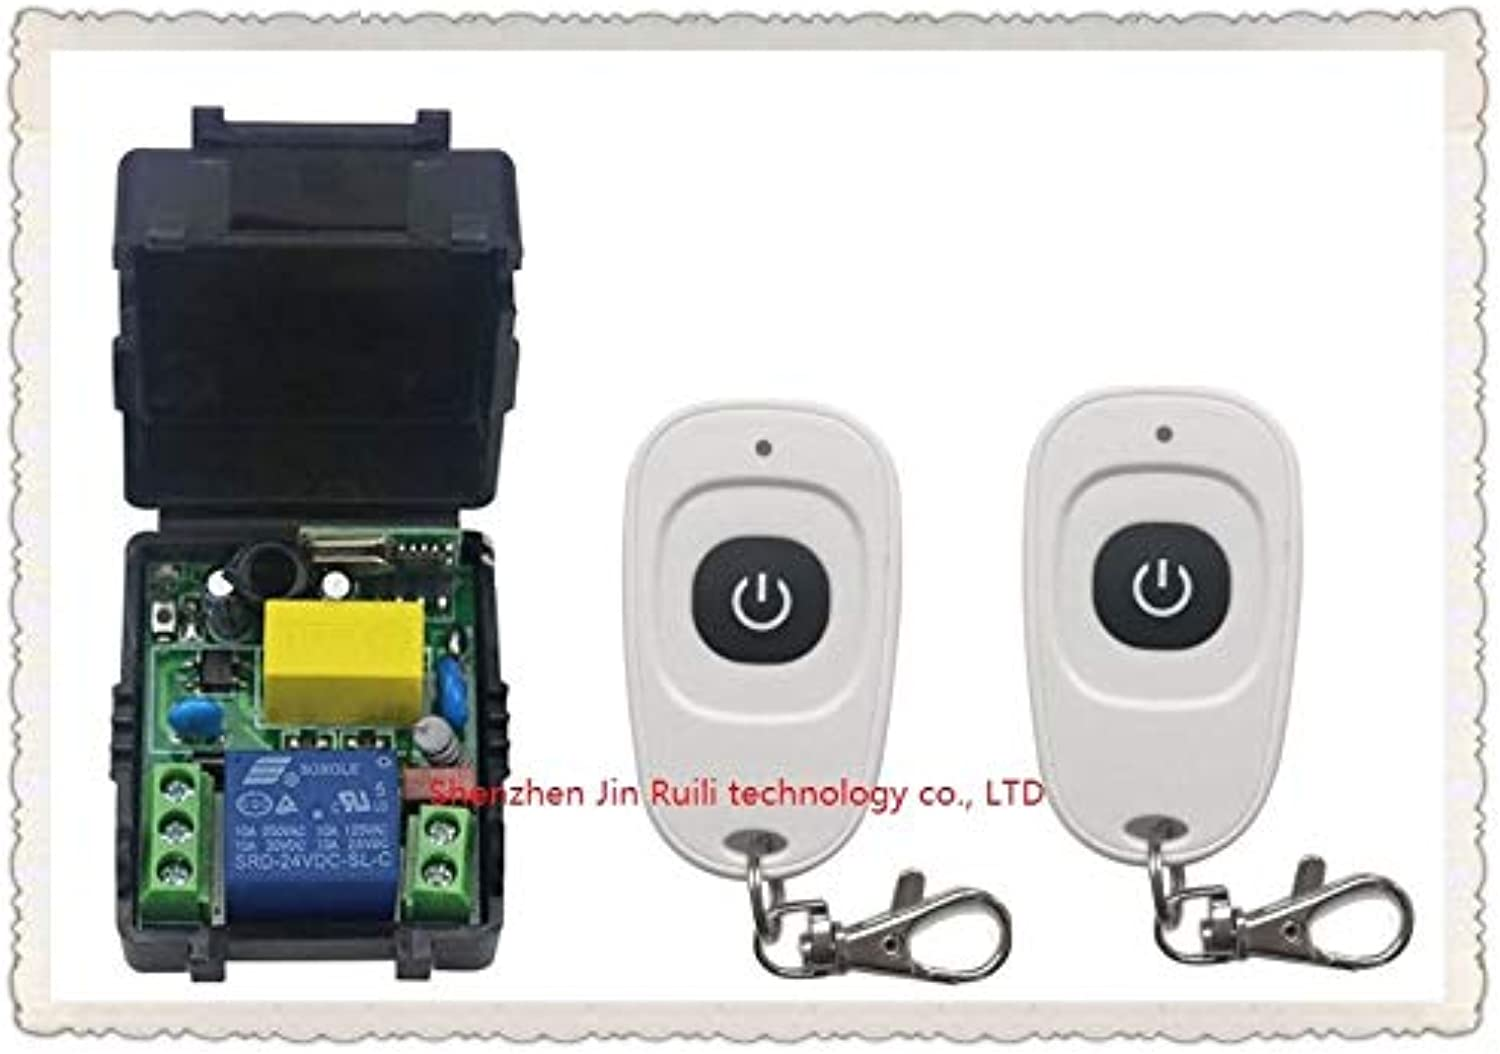 Latest AC220V 1CH Wireless Remote Control Switch System Receiver &2pcs oneButton White Waterproof Remote 315mhz 433mhz